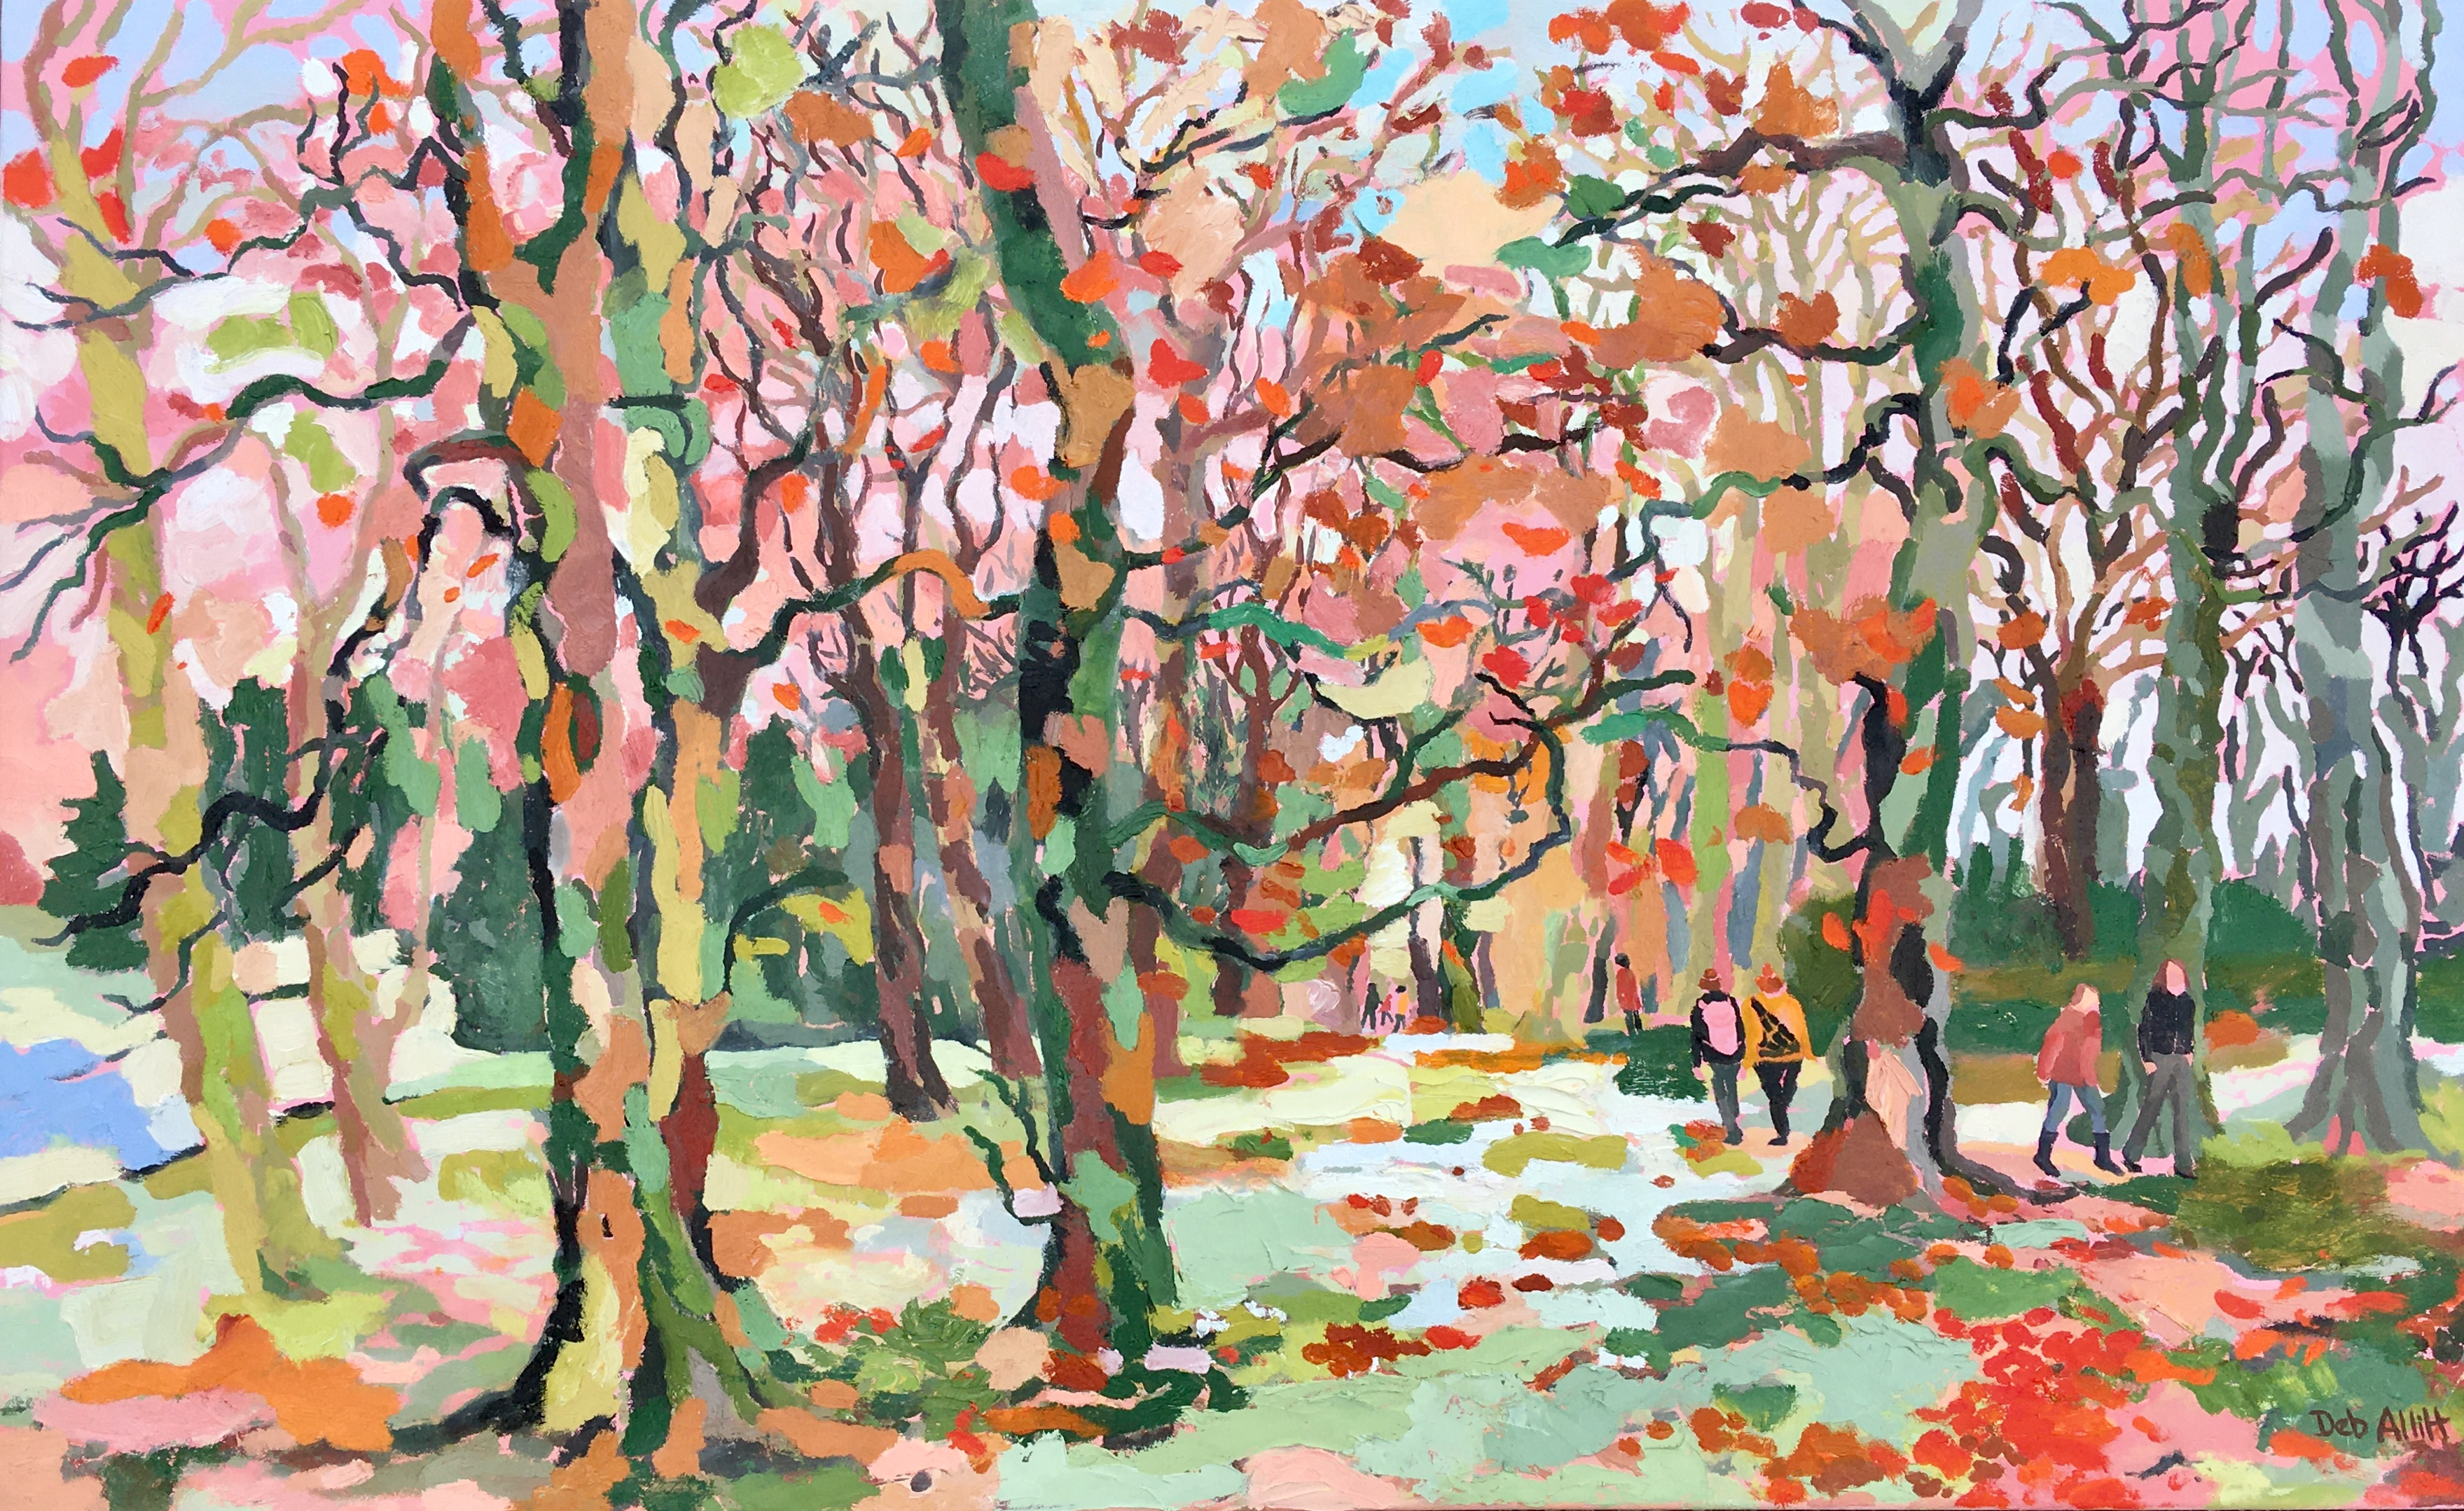 Autumn Colours in the Woods. Oil on canvas. 70 x 113 cm. (sold)